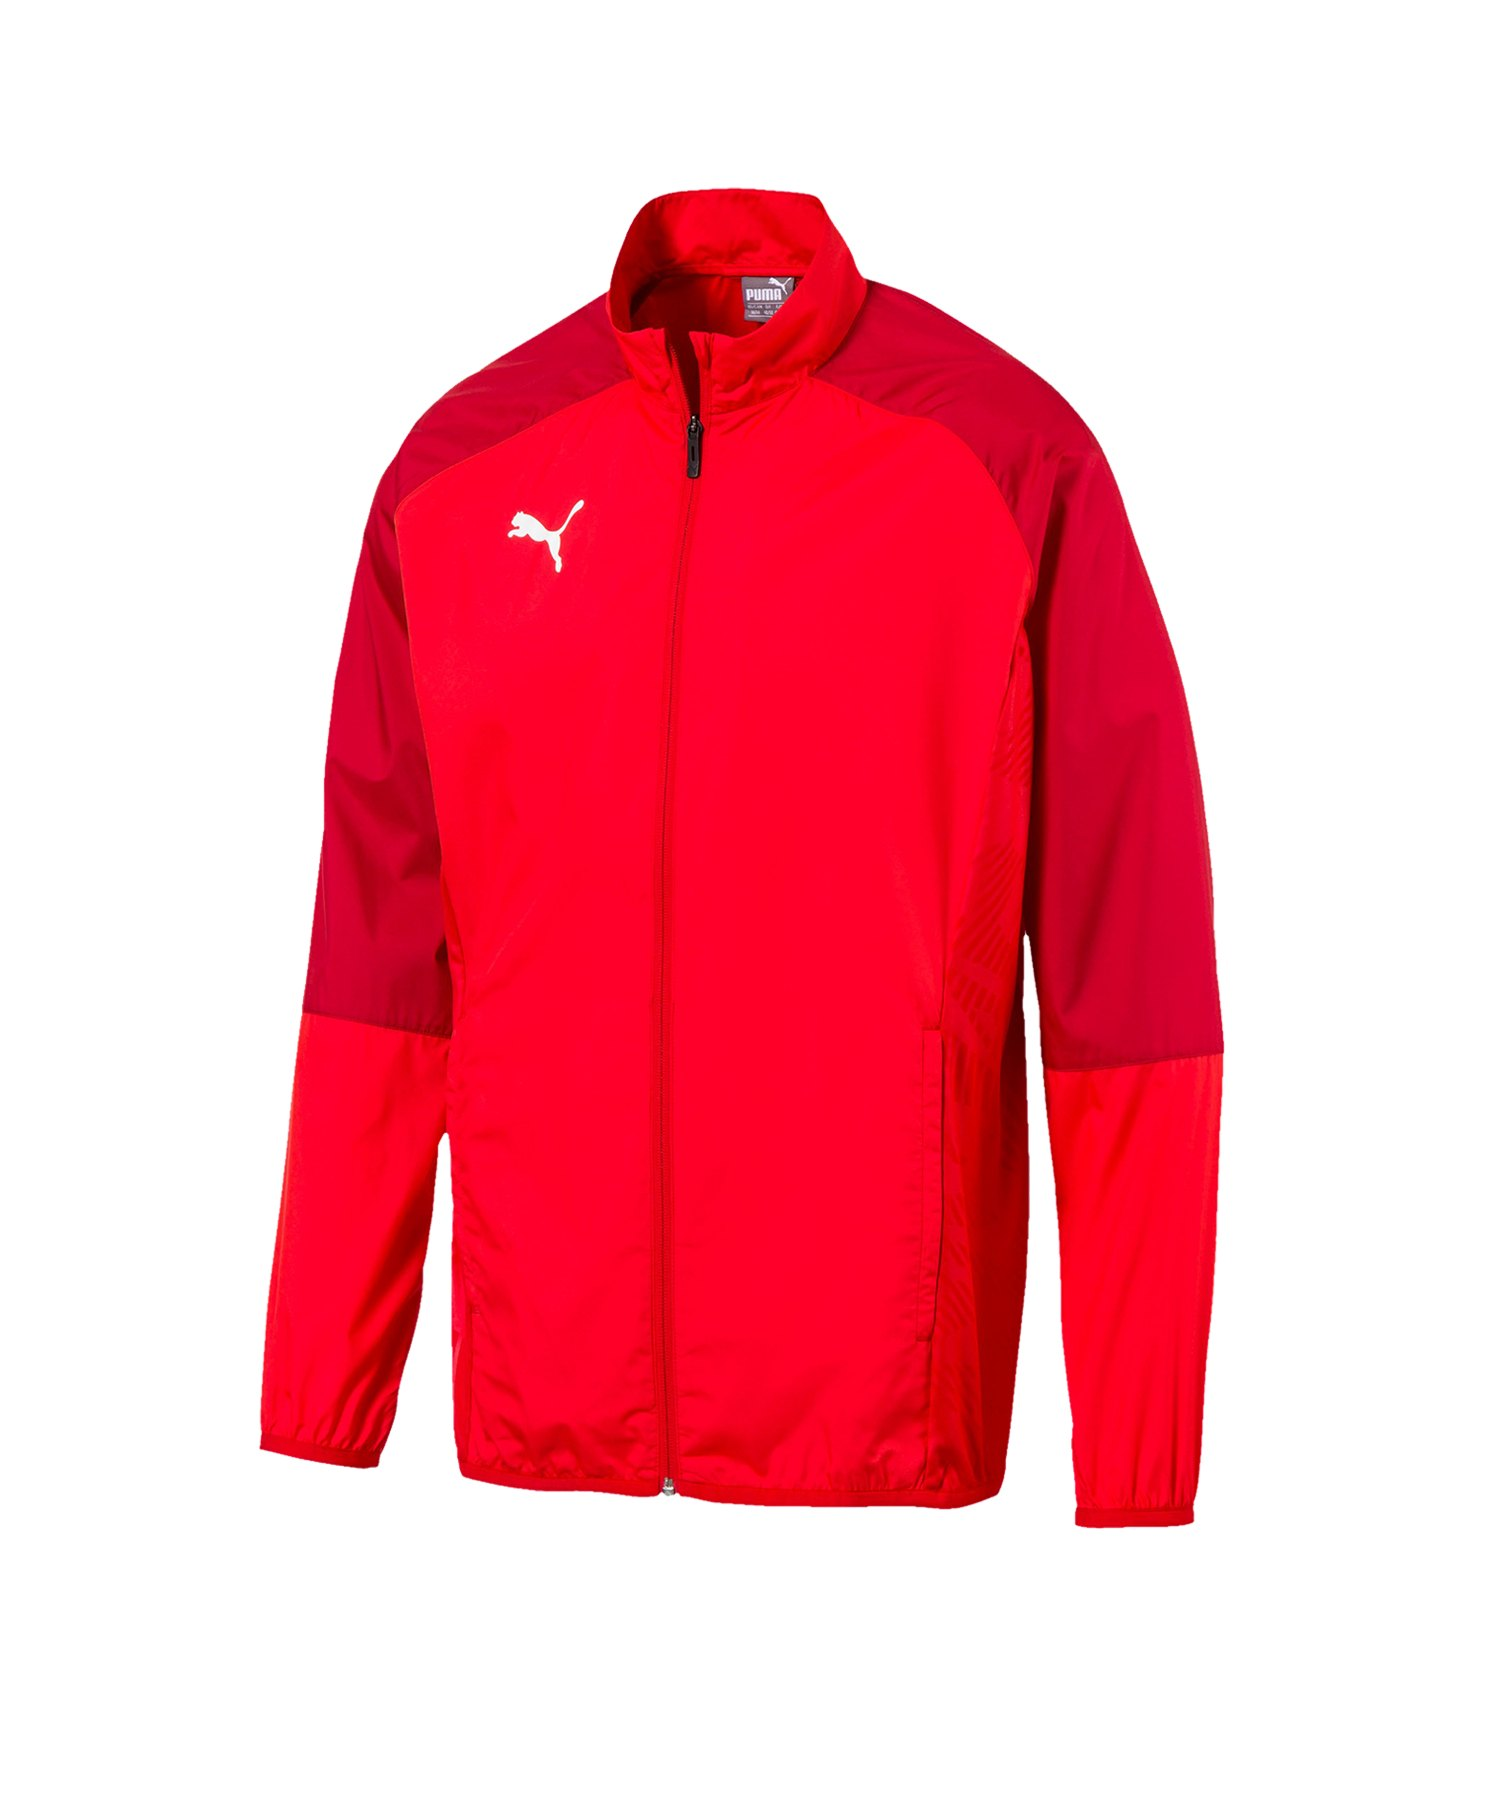 PUMA CUP Sideline Core Woven Jacket Rot F01 - rot